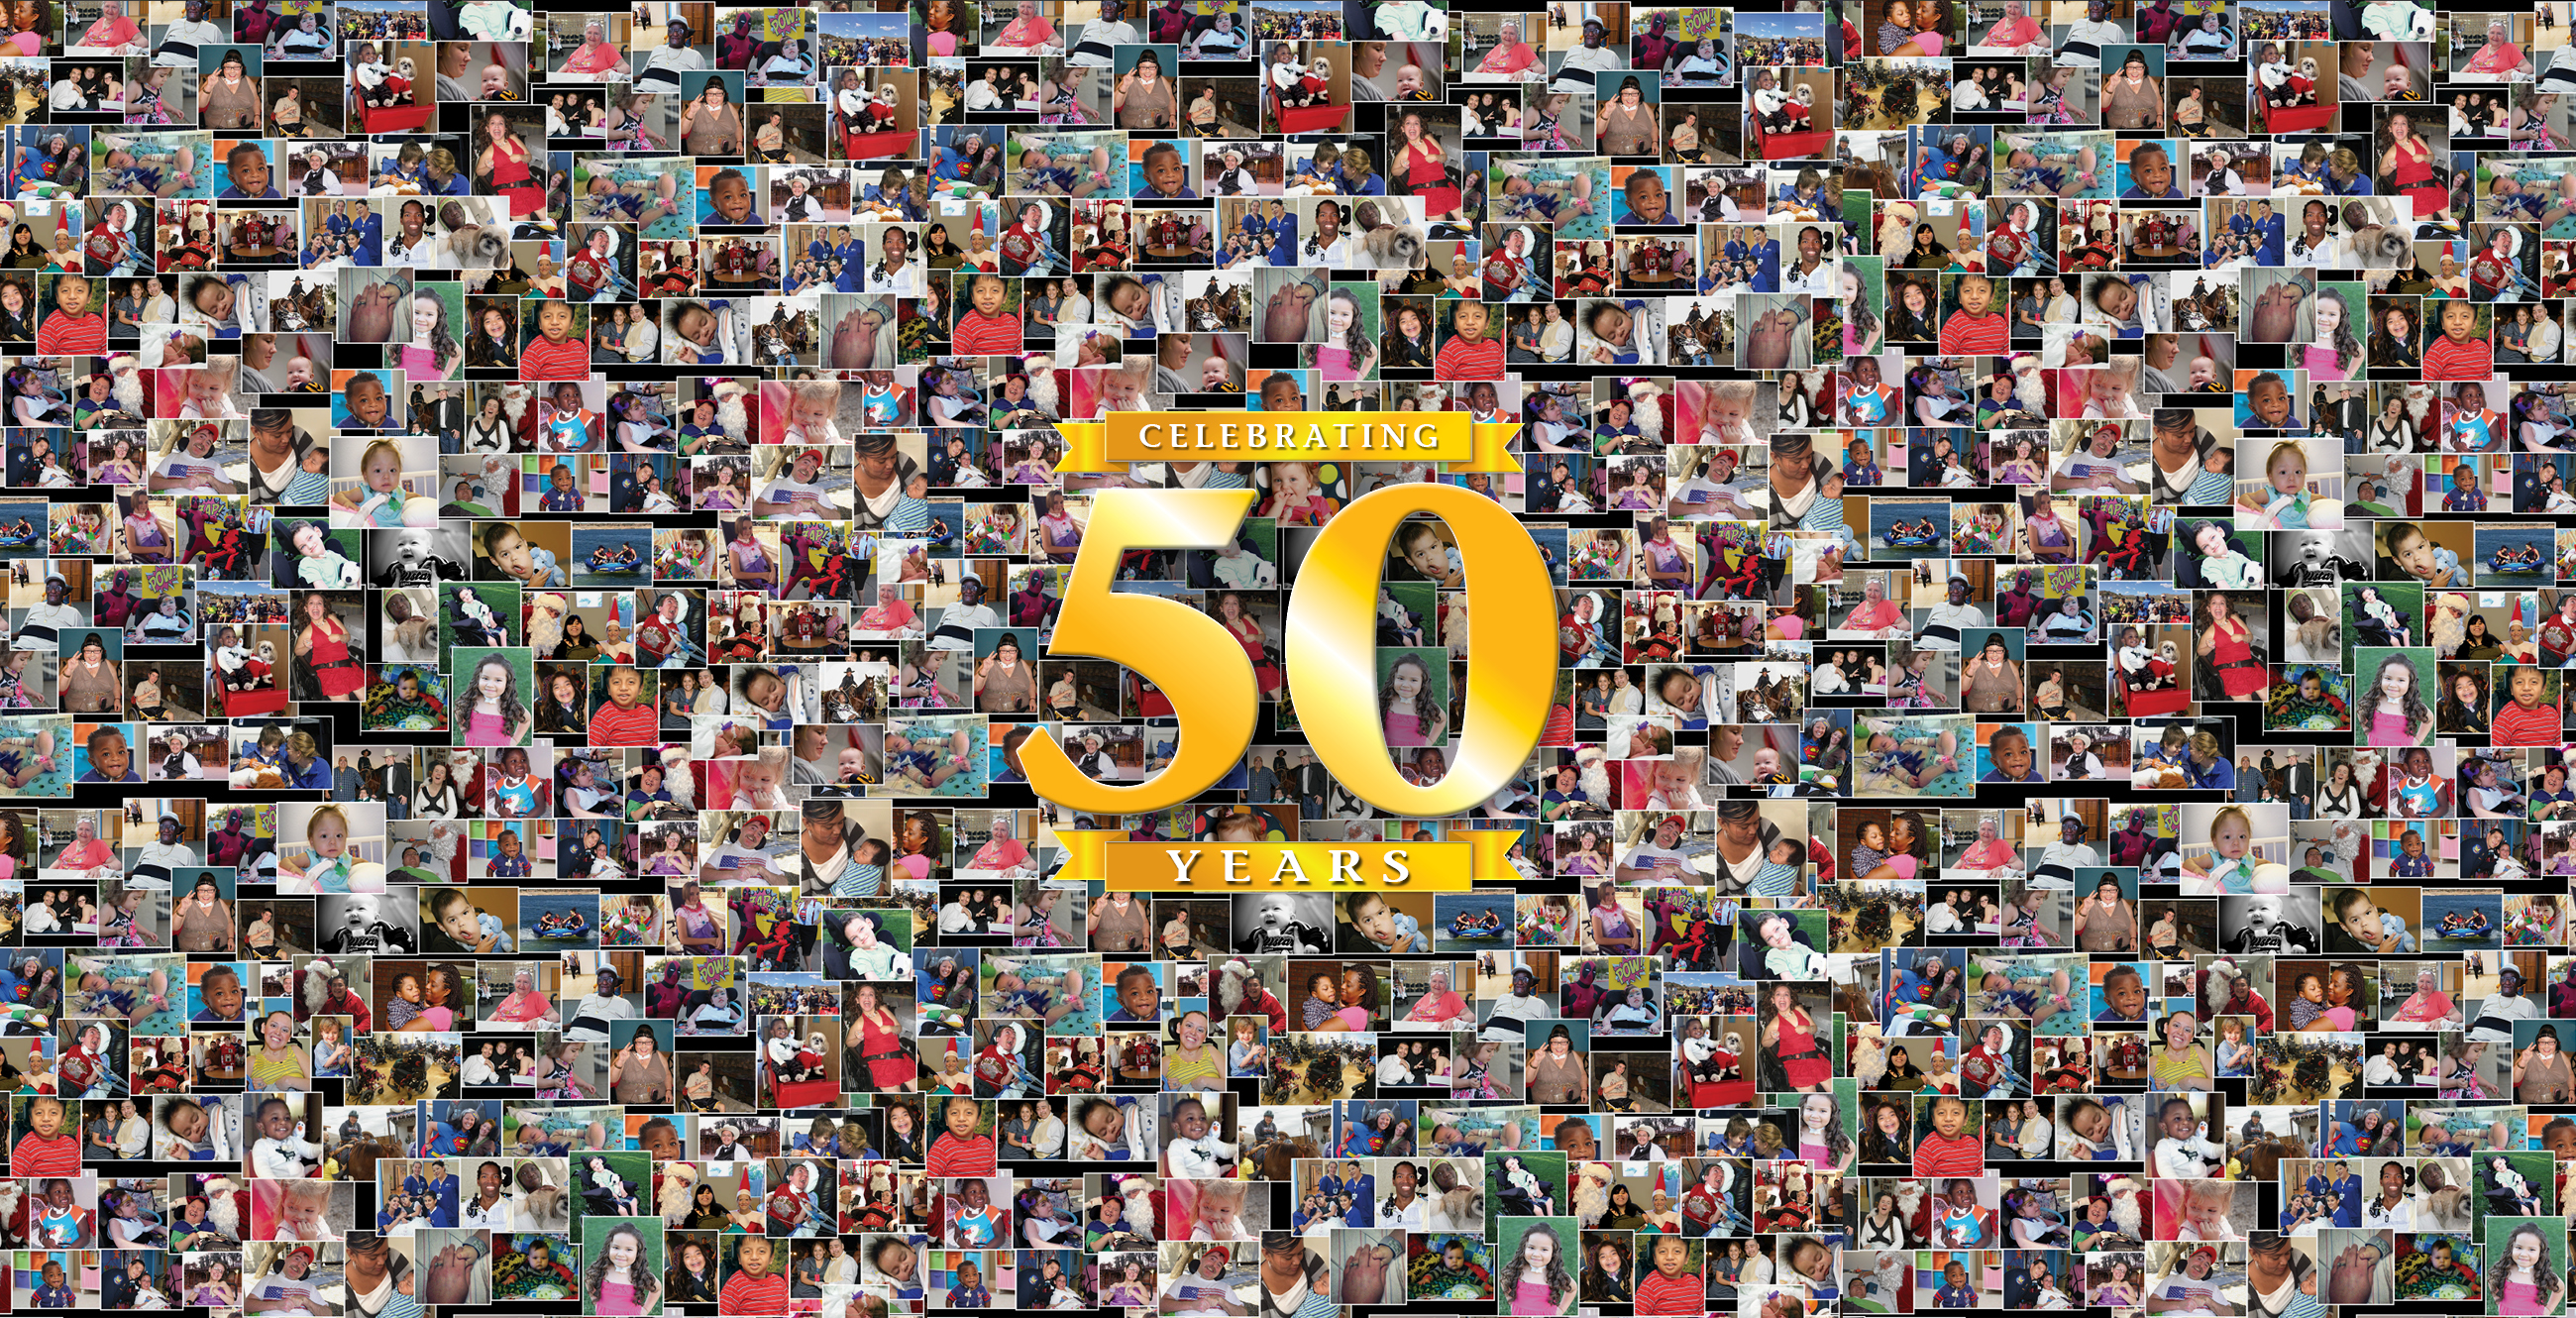 Celebrating 50 Years Collage SliderImage